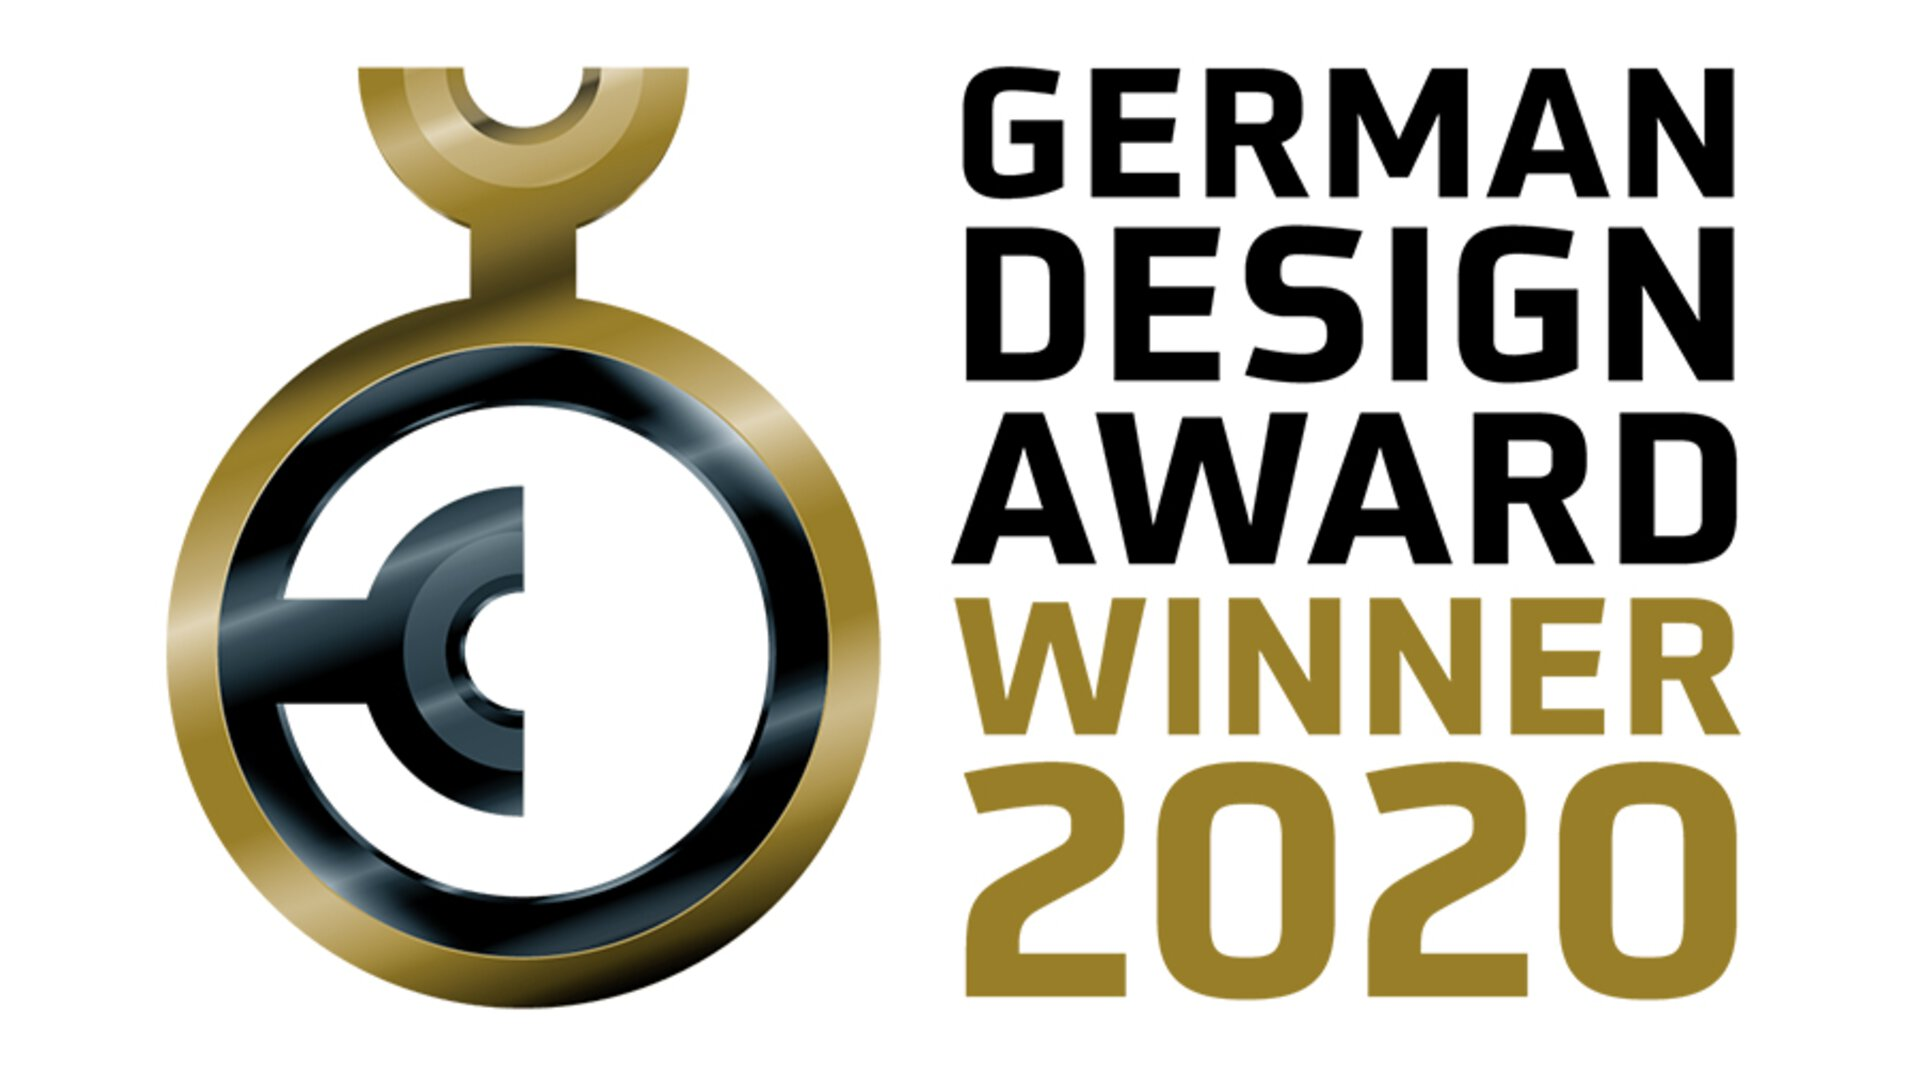 german_design_award_winner_202